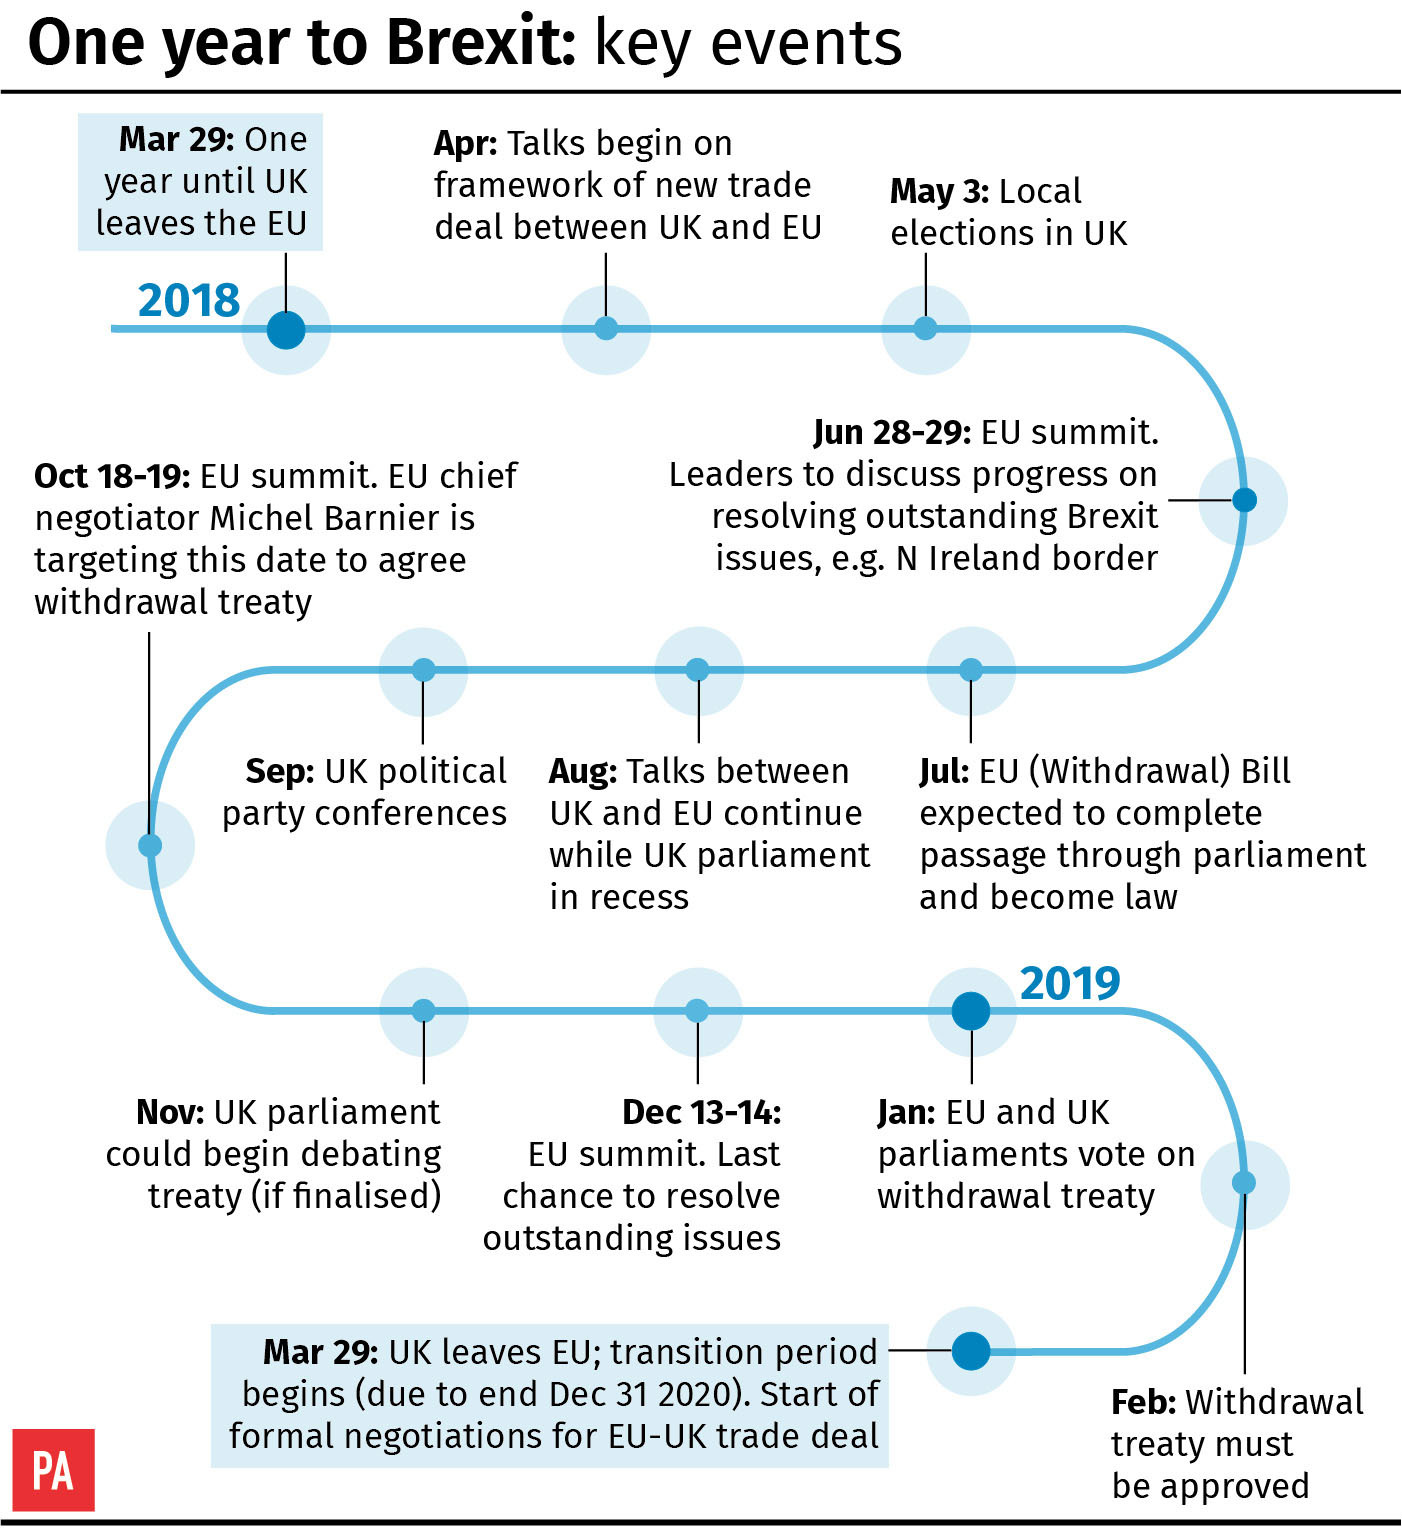 One year to Brexit: key events (PA Graphics)